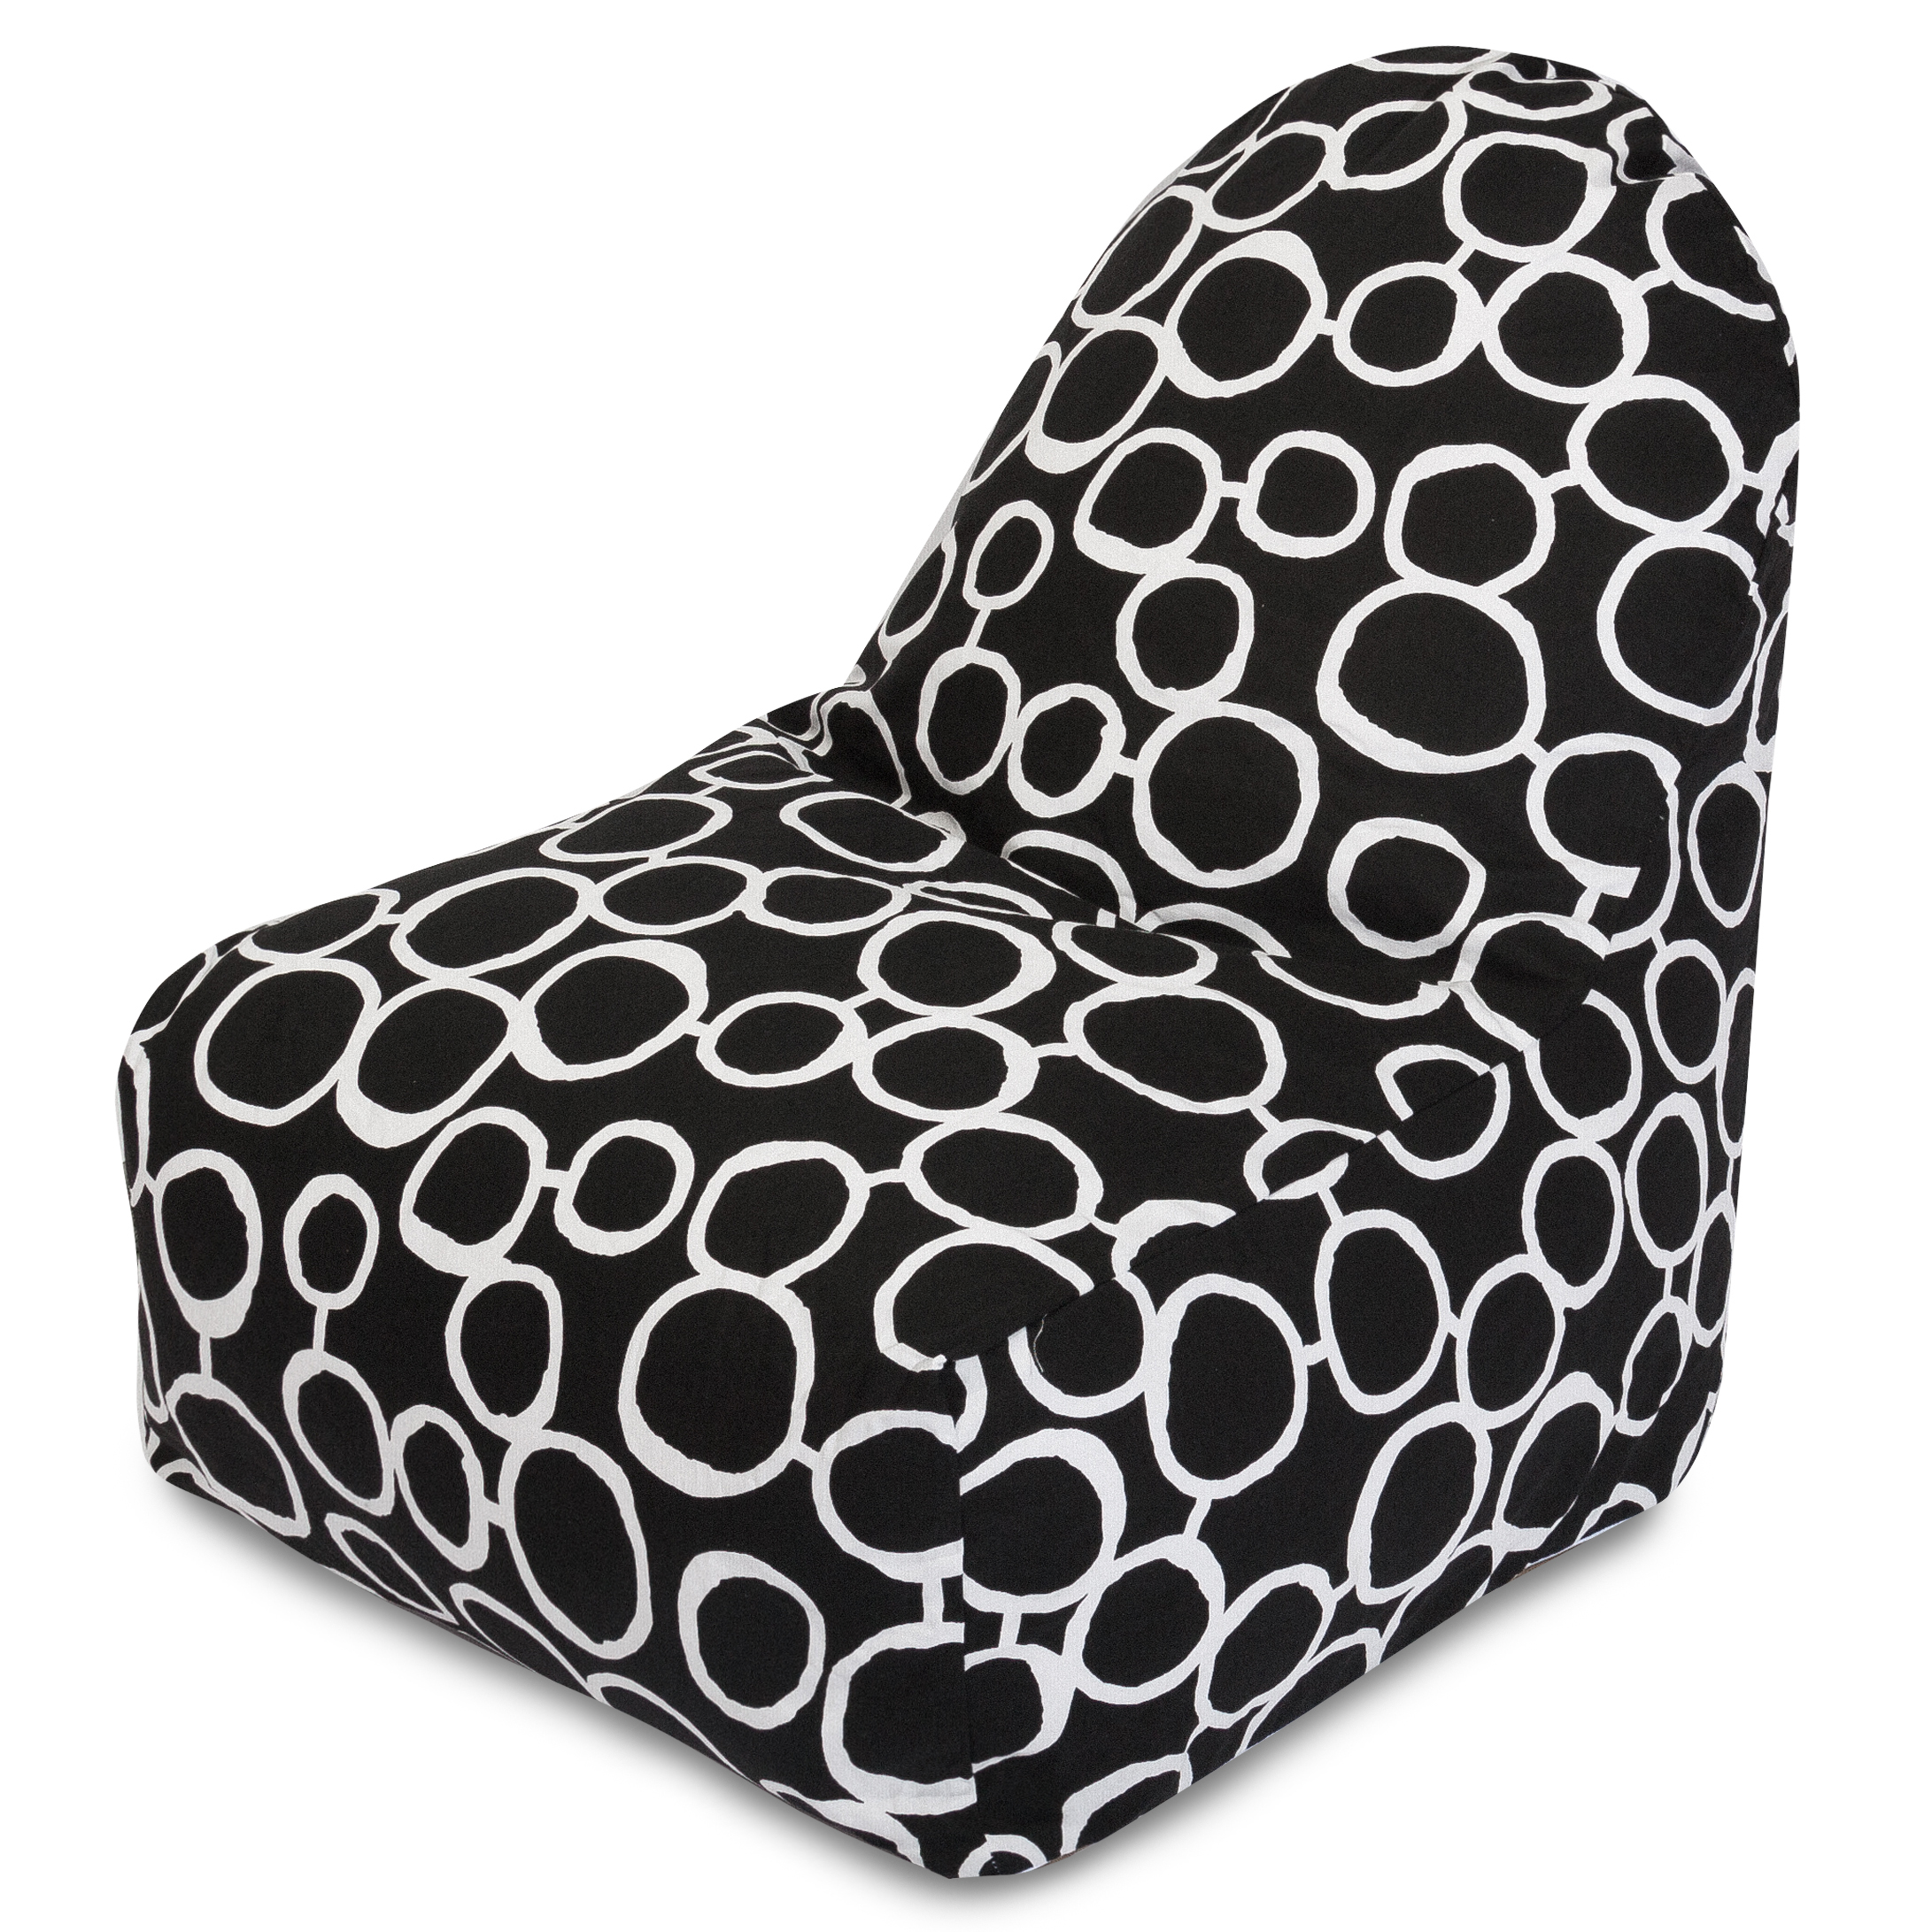 Majestic Home Goods Indoor Black Fusion Bean Bag Kick-it Chair 30 in L x 26 in W x 30 in H